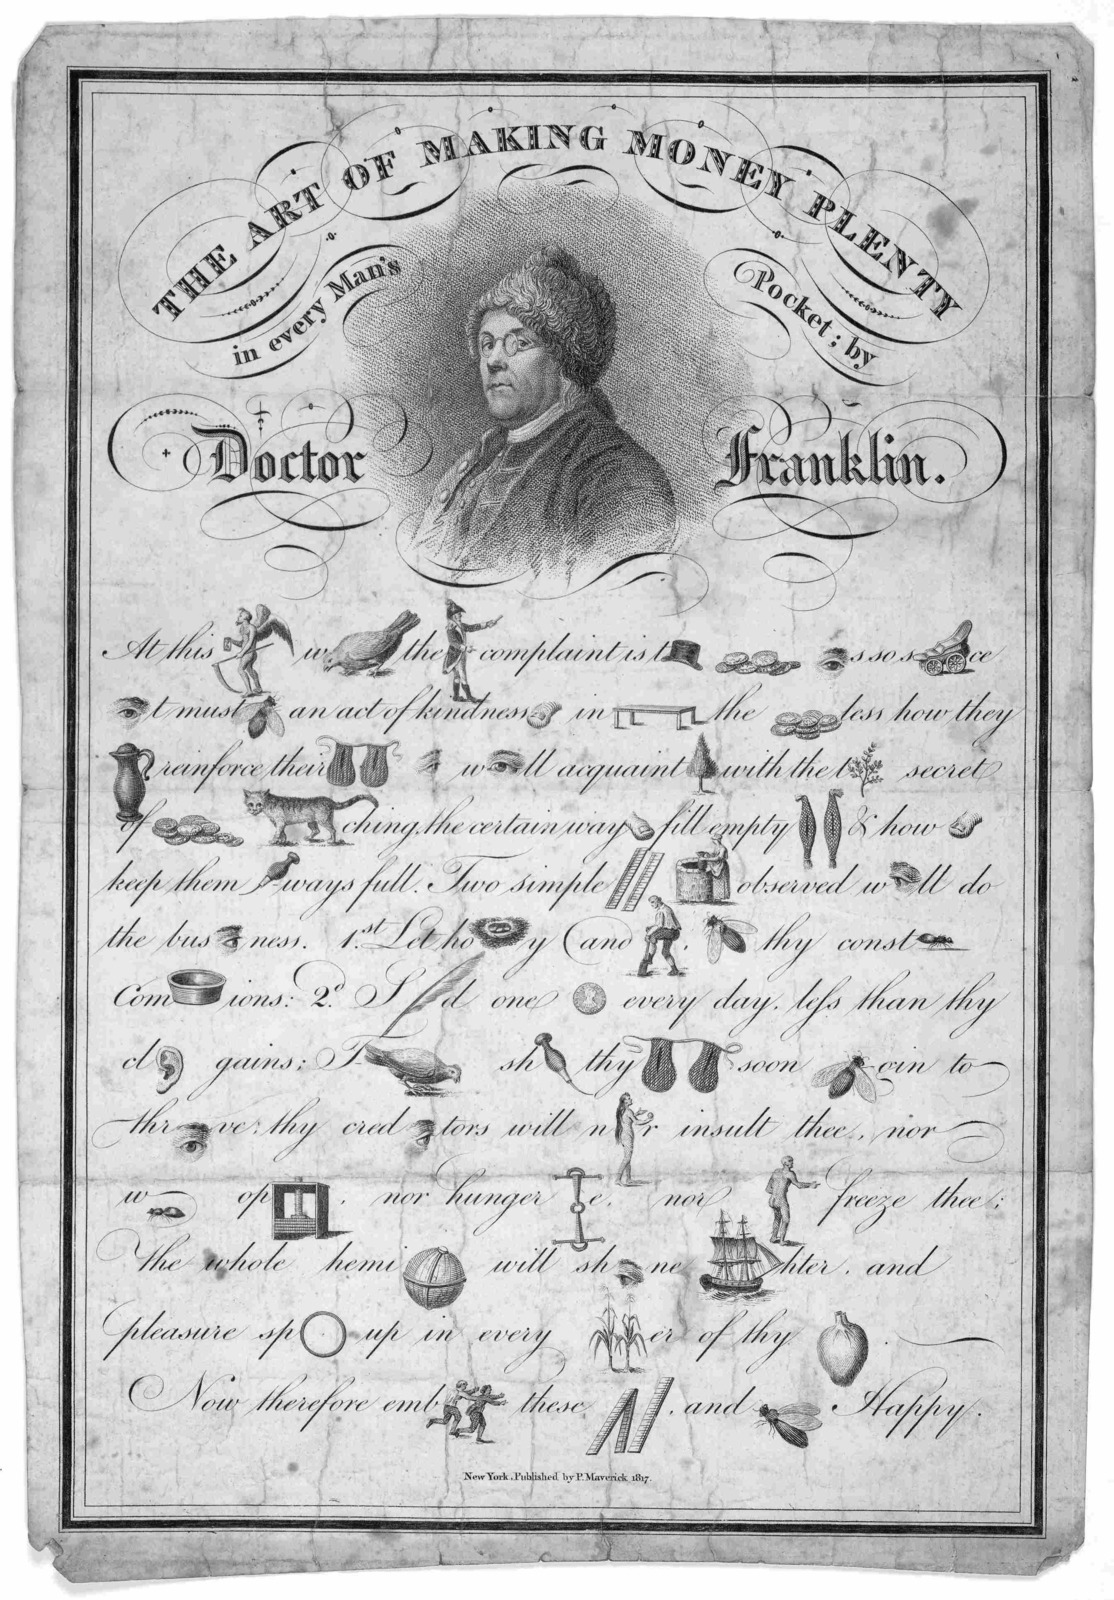 The art of making money plenty in every man's pocket by Doctor Franklin. New York Published by P. Maverick, 1817.